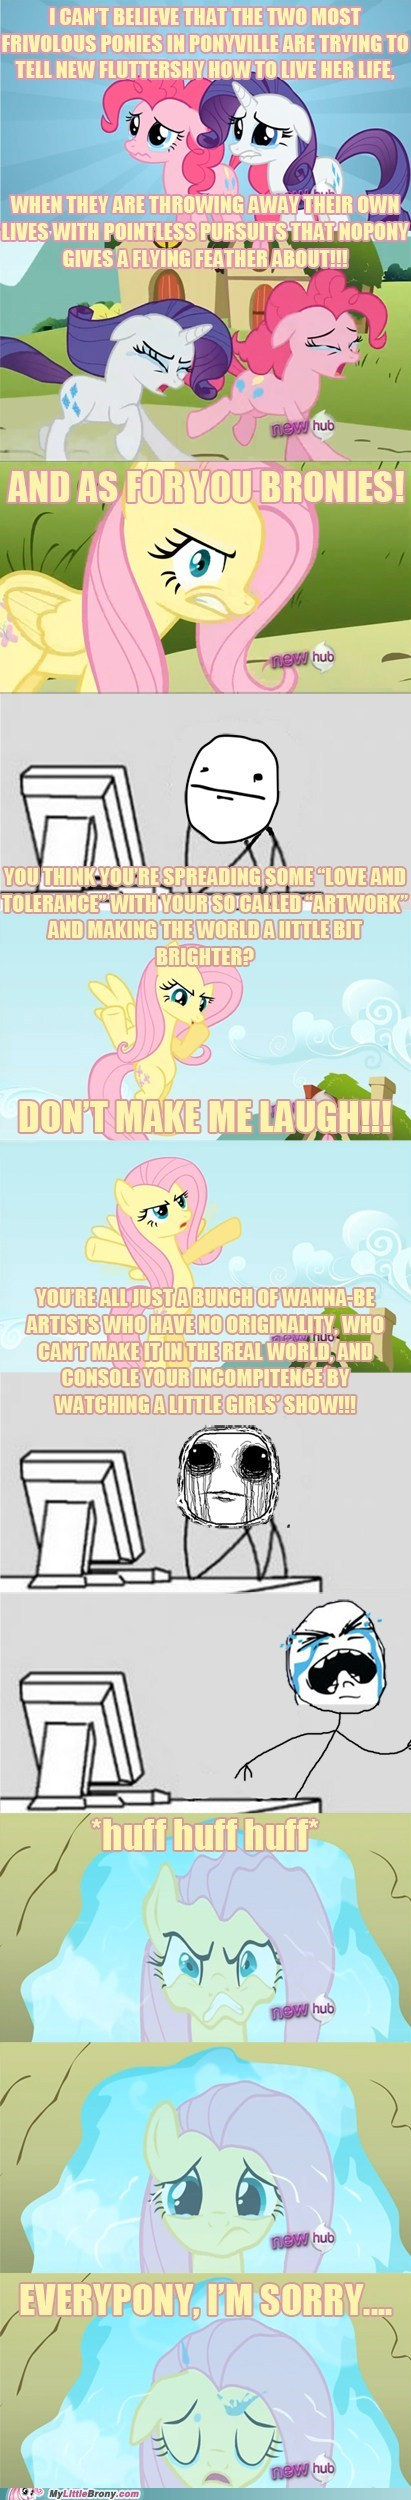 Bronies,comics,fluttershy,im-a-monster,new fluttershy,regret,Sad